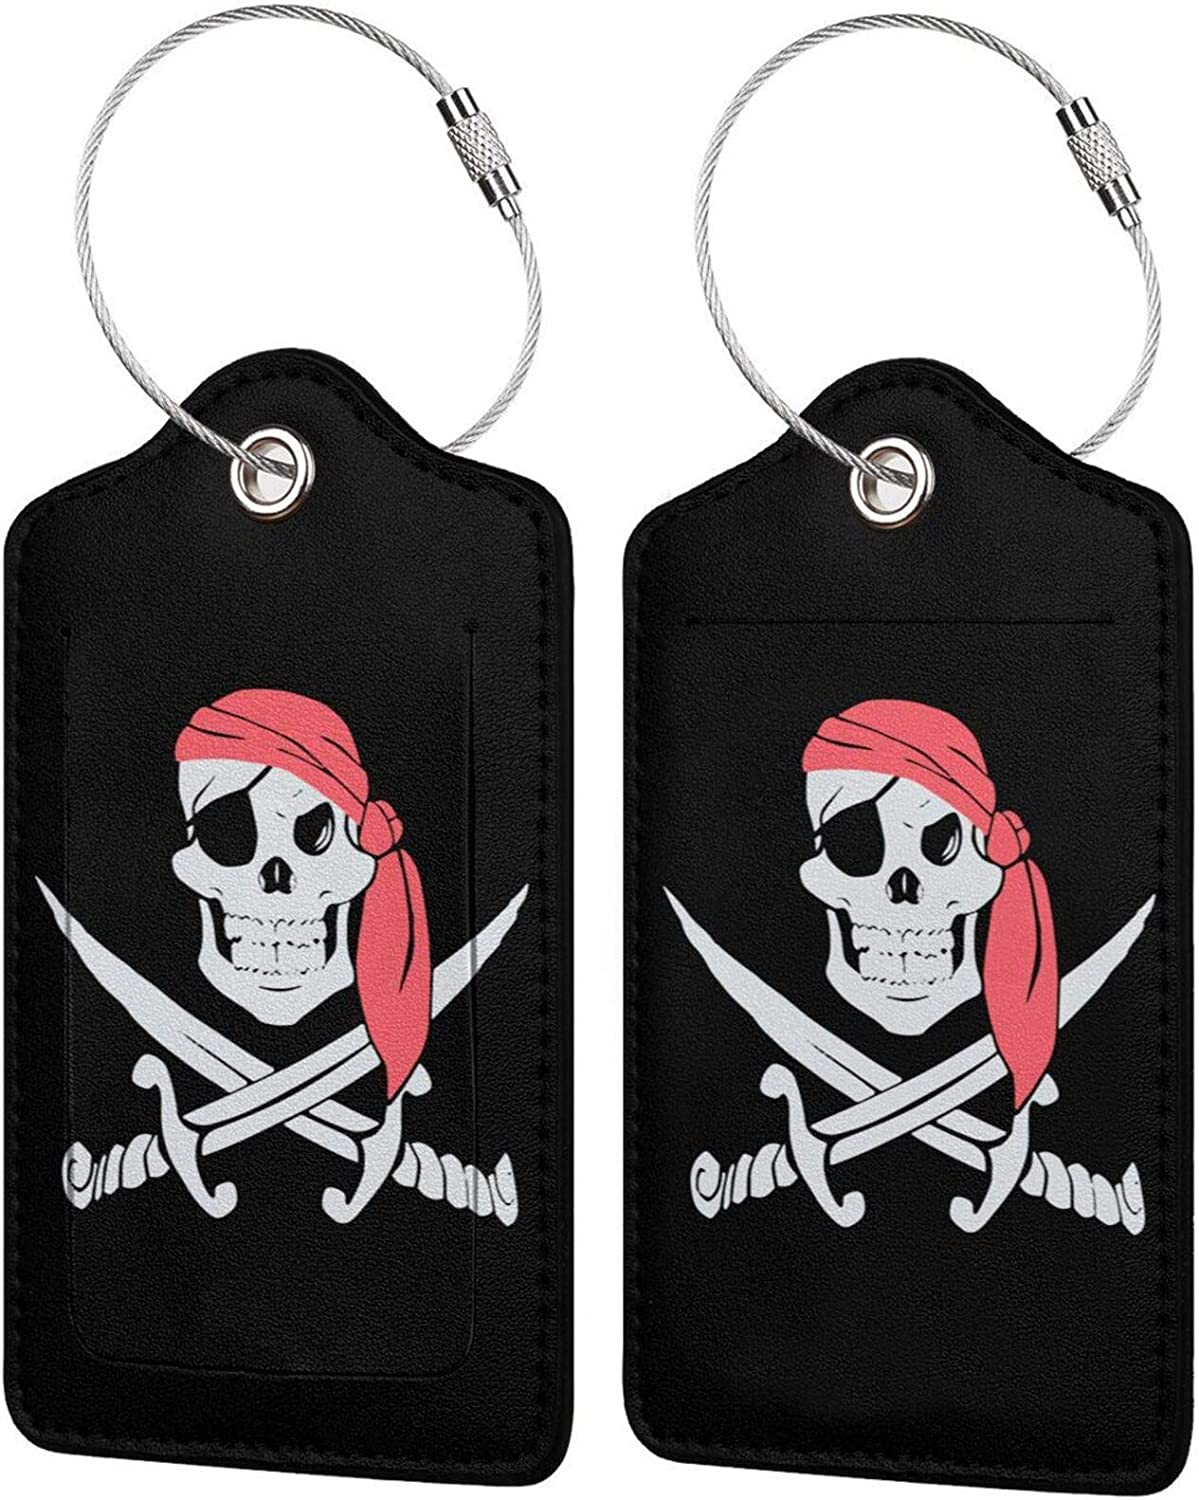 Pirate Flag PU Leather Baggage Bag with Super sale Luggage Rectangle Pr tag Inexpensive